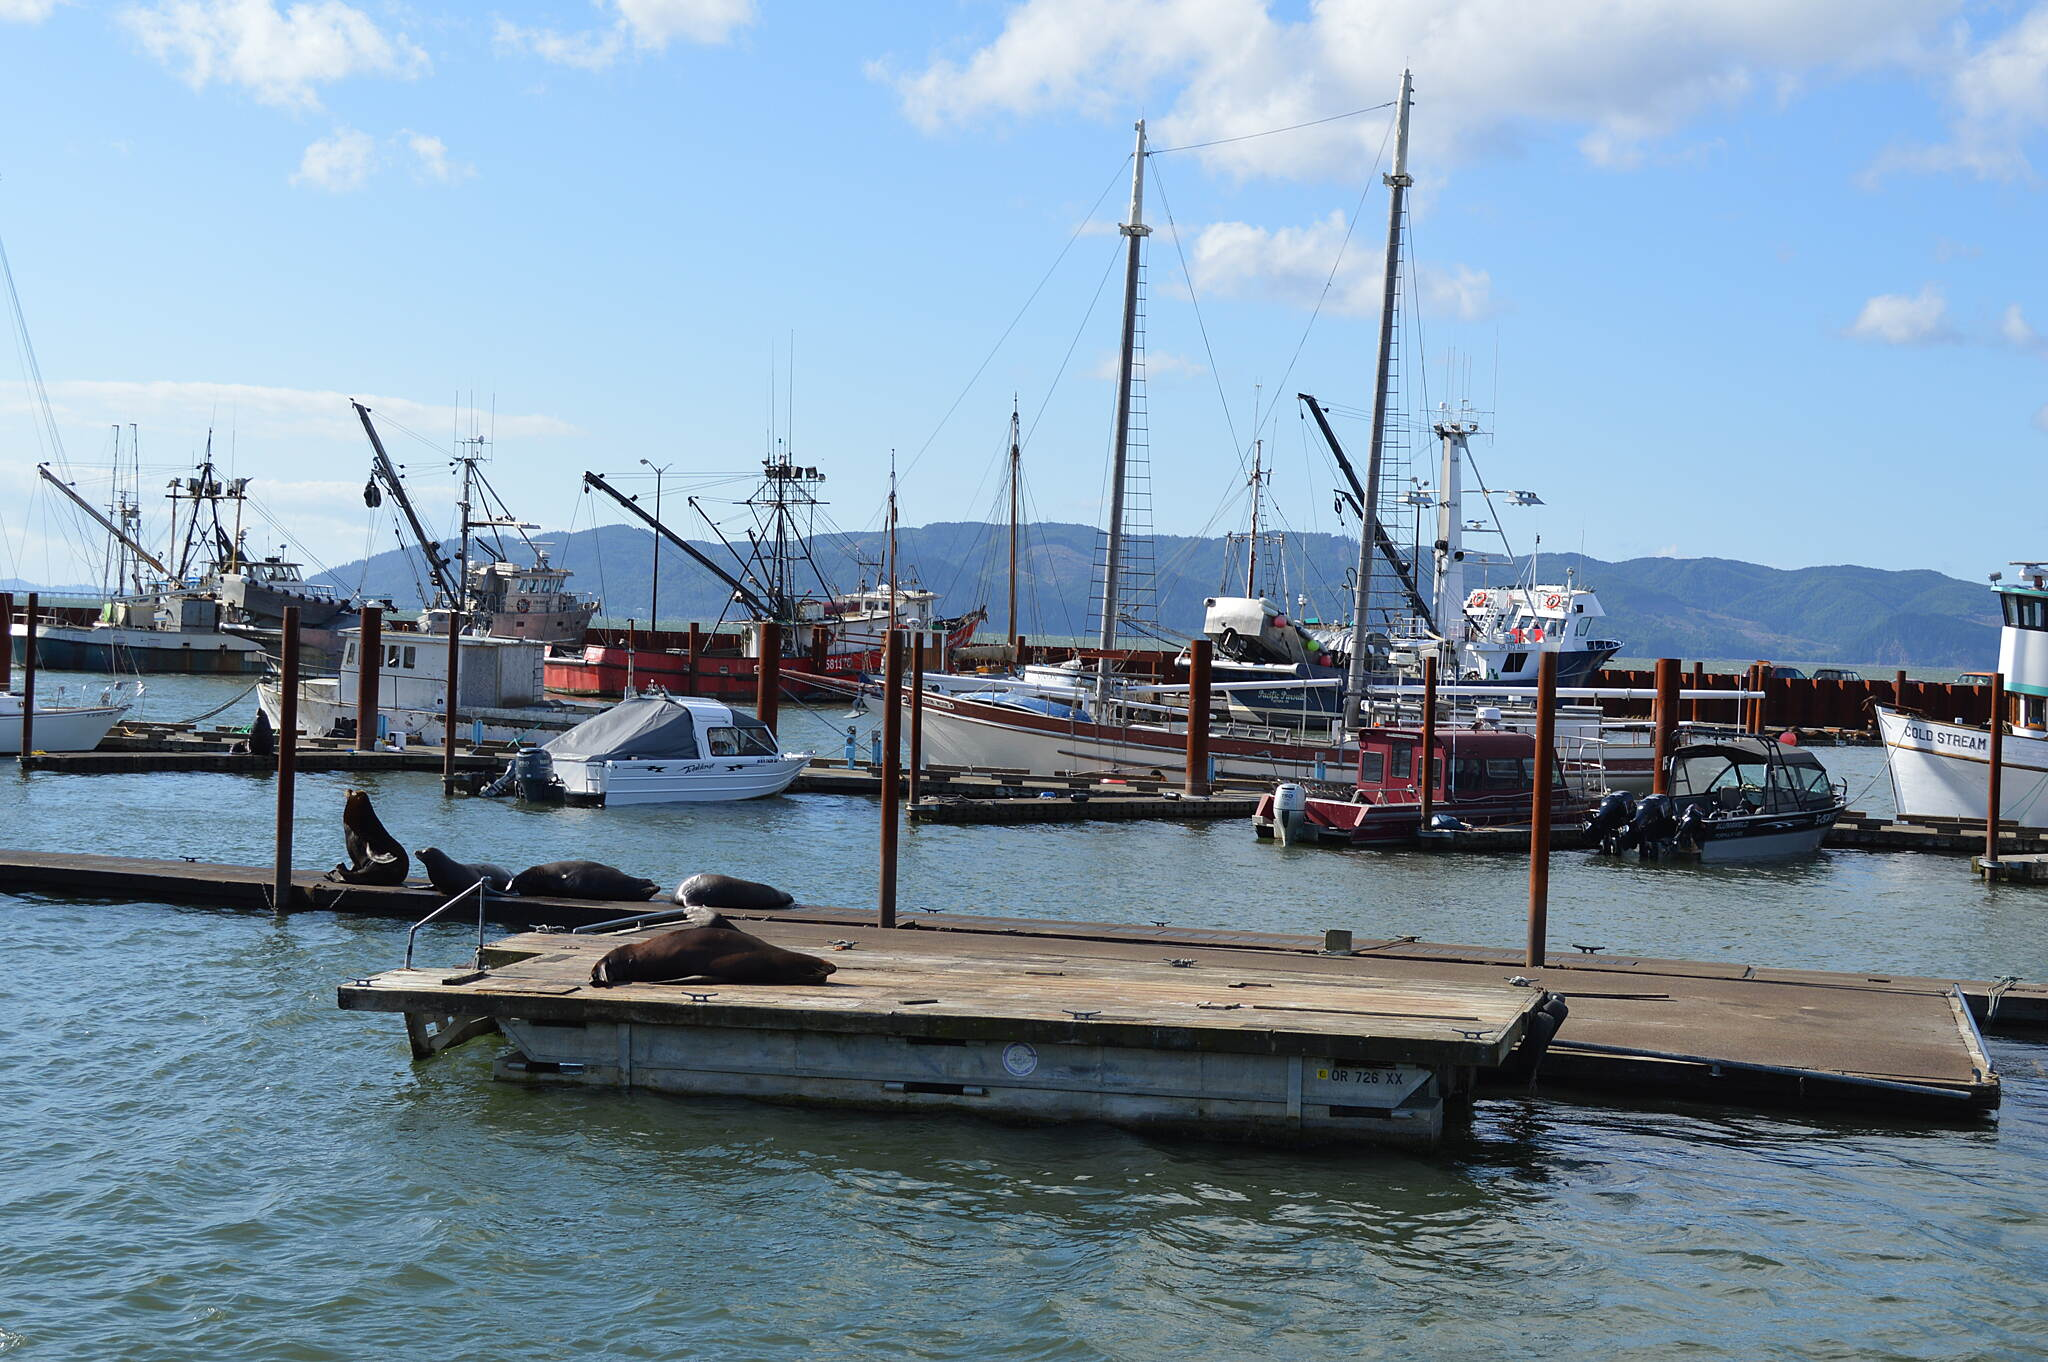 Astoria Riverwalk Sea lions basking on the docks